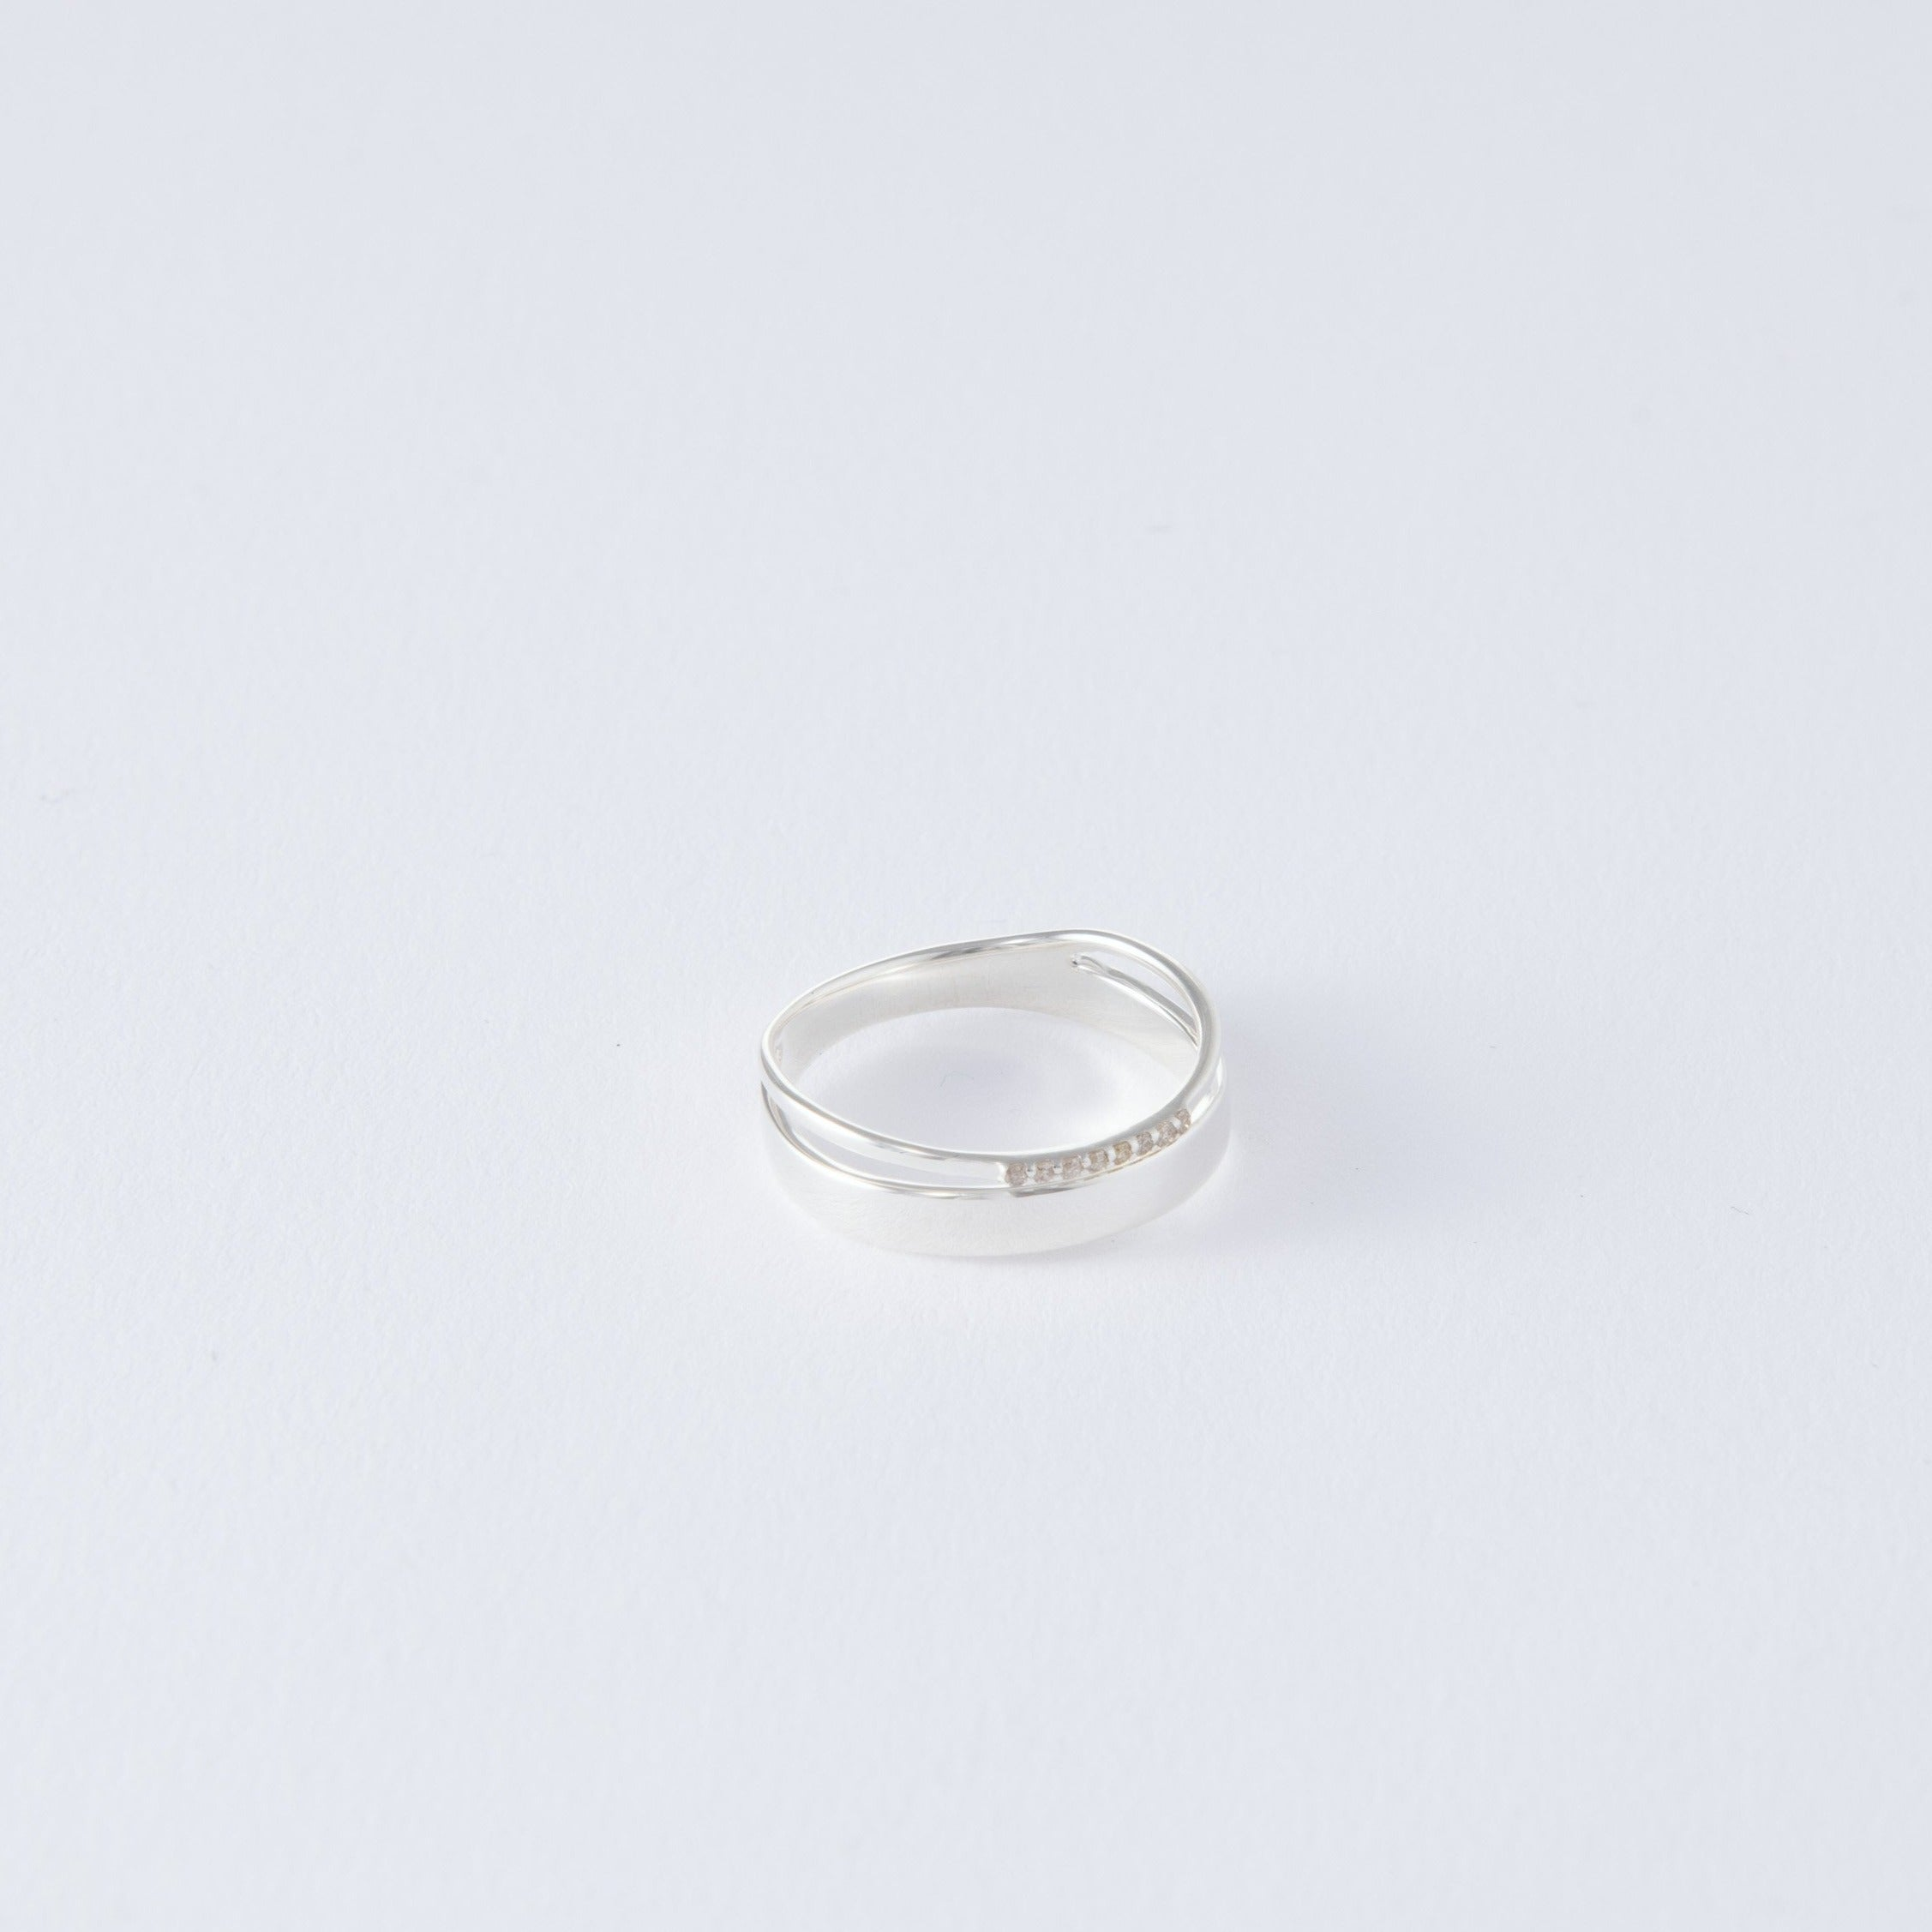 silver layered 8 stone ring[made to order]